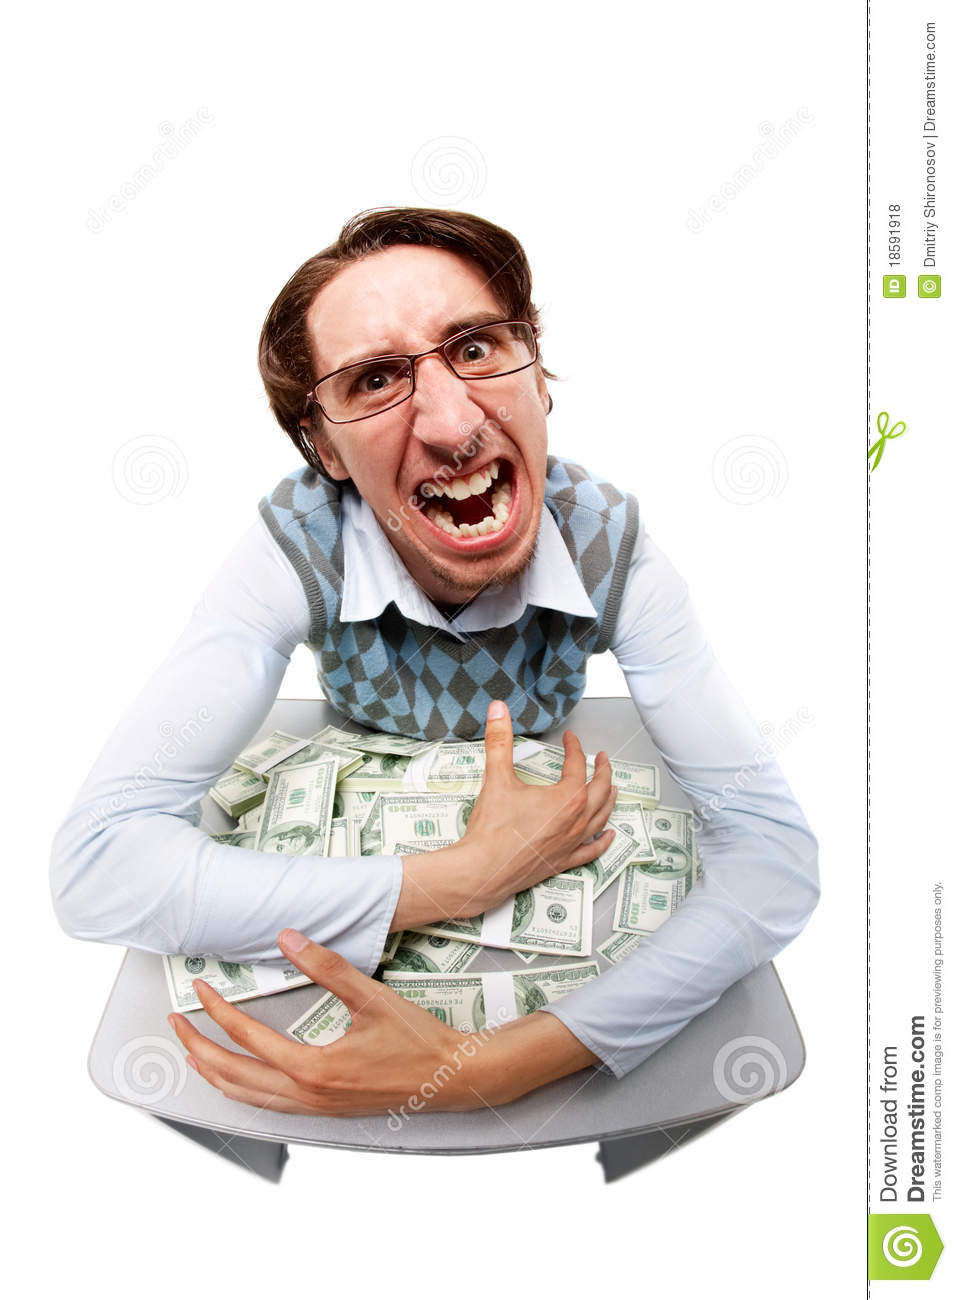 Greedy Man Royalty Free Stock Photos - Image: 18591918